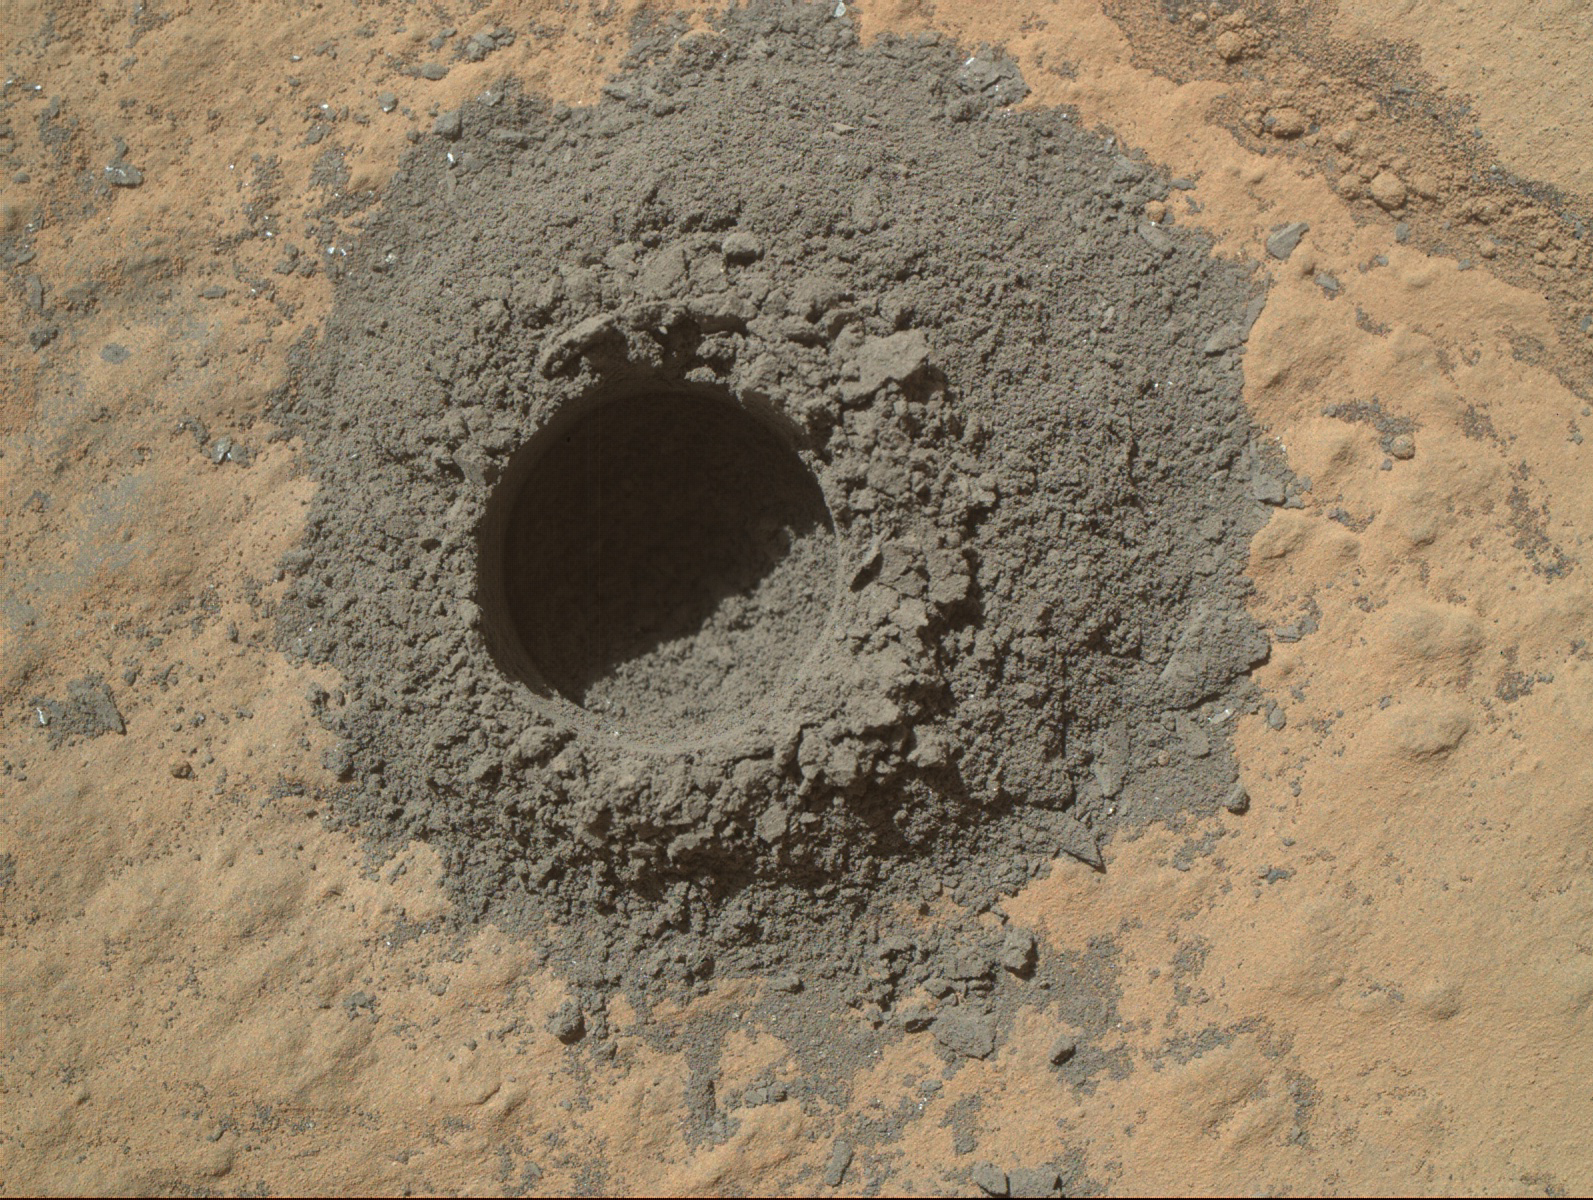 a hole in Martian rock drilled by Curiosity